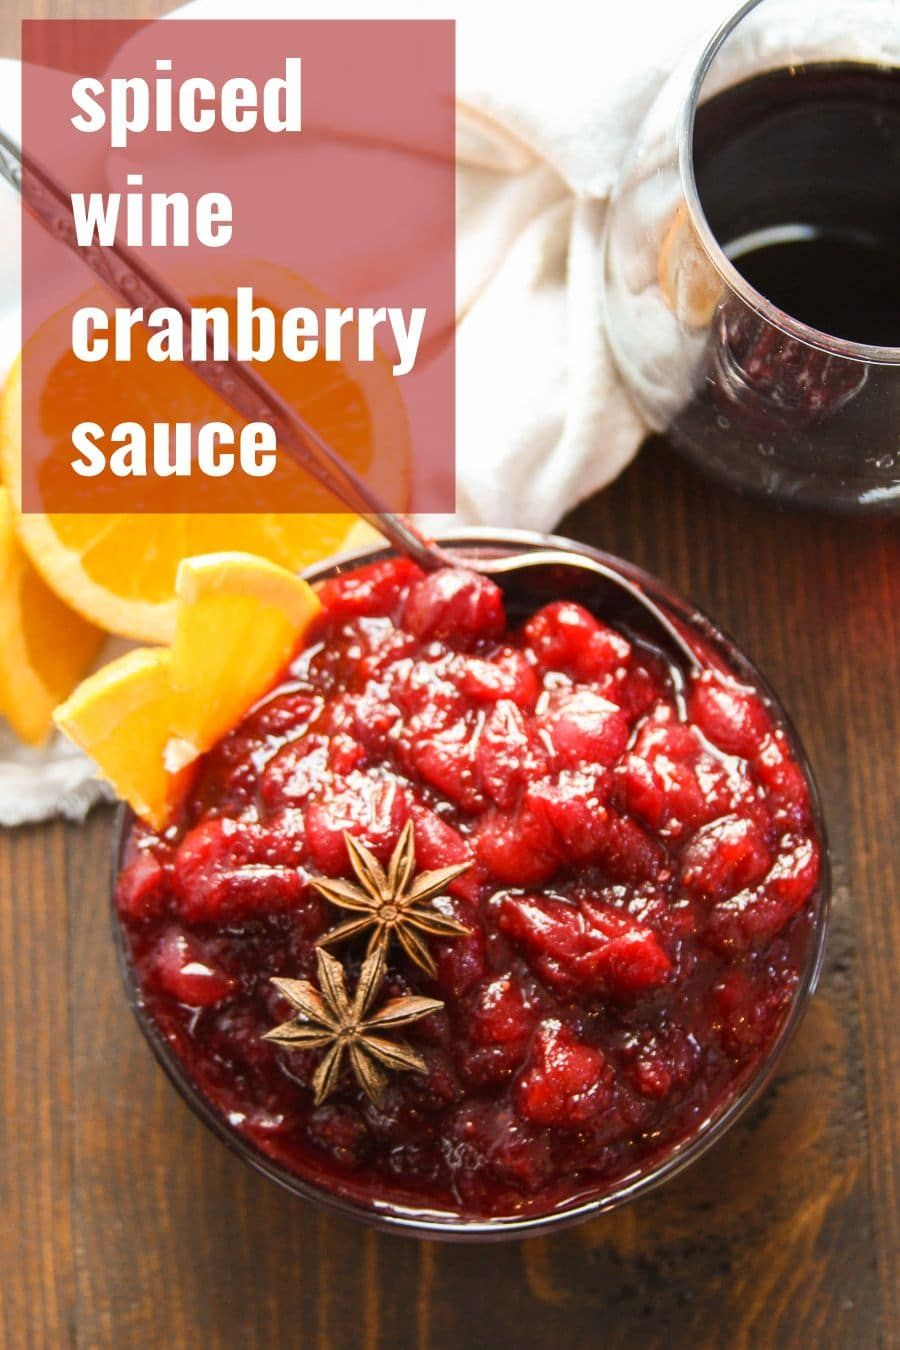 This Homemade Cranberry Sauce Is Bursting With Spices And The Intense Flavors Of Red Wine And Ap Spiced Wine Cranberry Sauce Homemade Cranberry Sauce